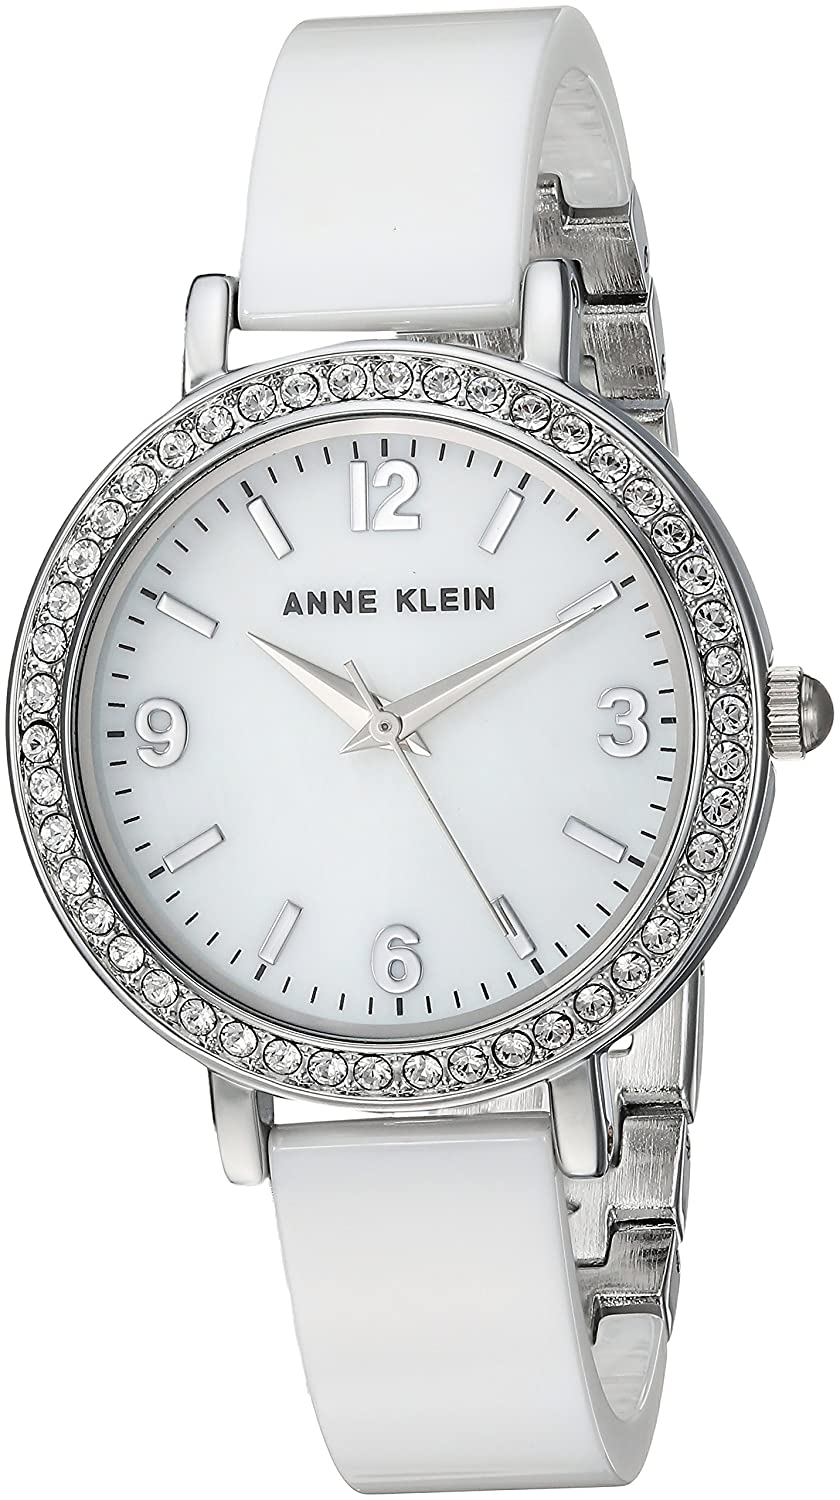 85d20d91c Amazon.com: Anne Klein Women's Swarovski Crystal Accented Silver-Tone and  White Ceramic Bangle Watch: Watches